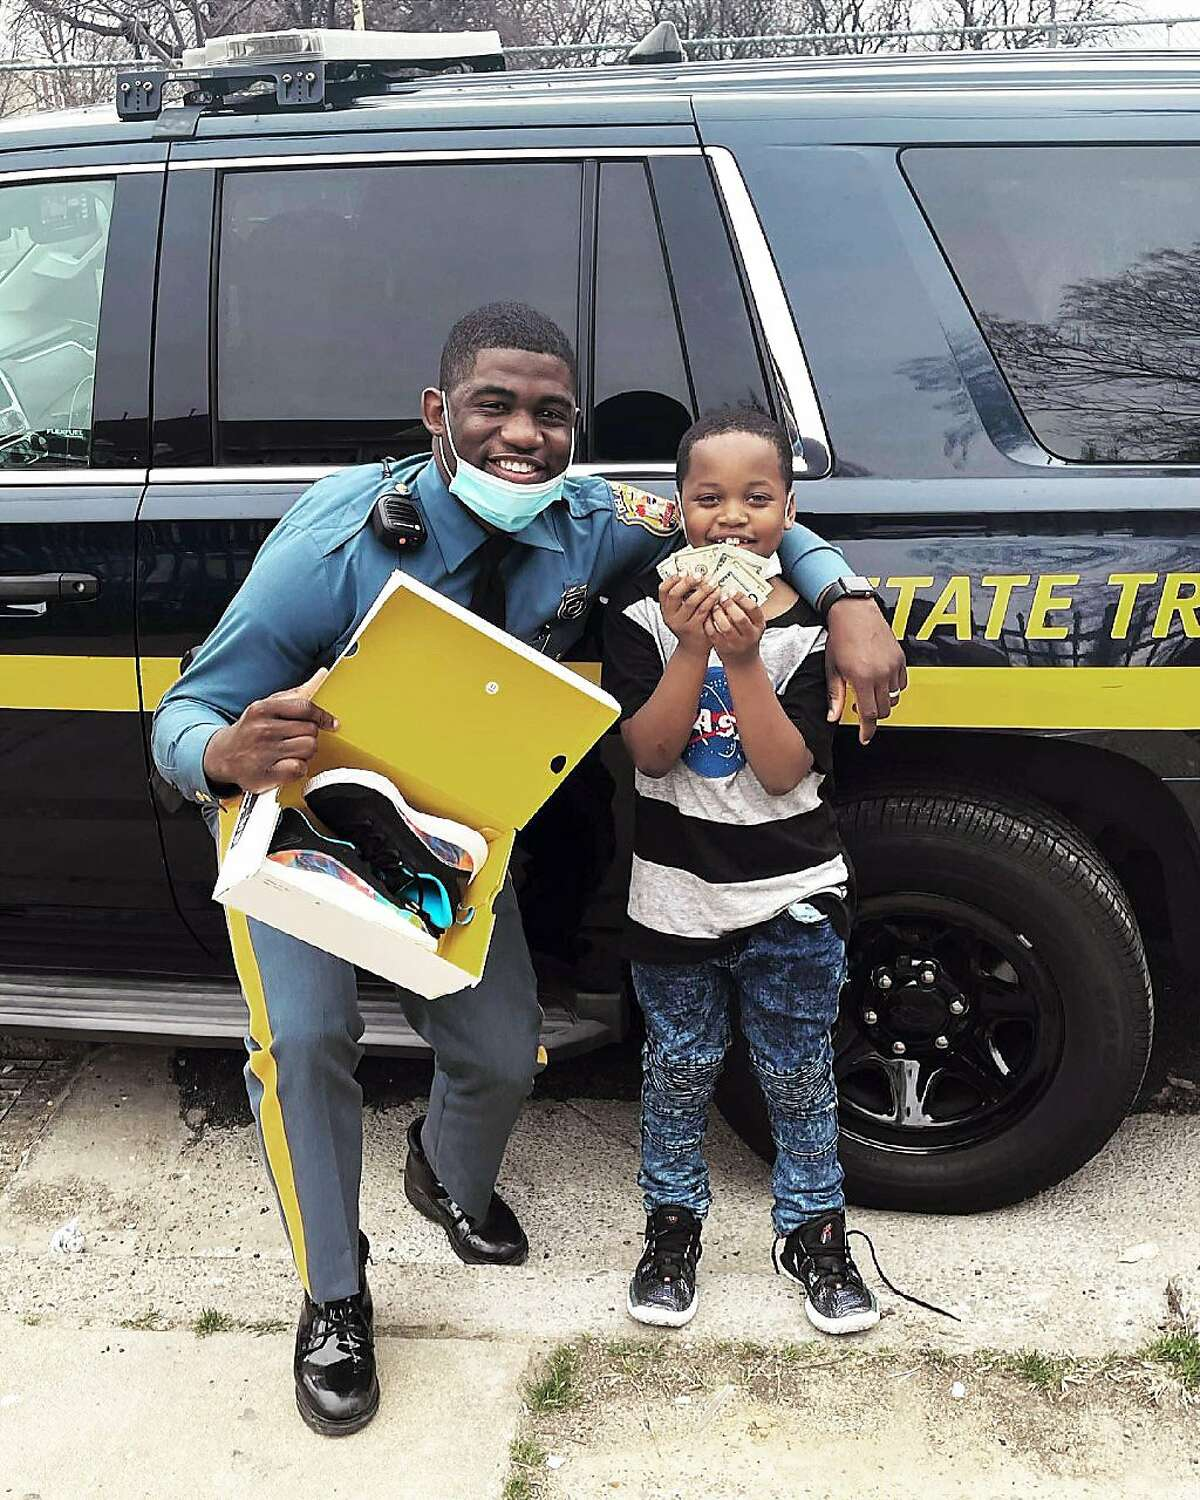 """Delaware State Trooper Joshua Morris and nine-year-old Ra'kir """"Rocky"""" Allen will attend the Golden State Warriors' game against the Philadelphia 76ers Monday, April 19, as guests of Warriors' star Stephen Curry."""